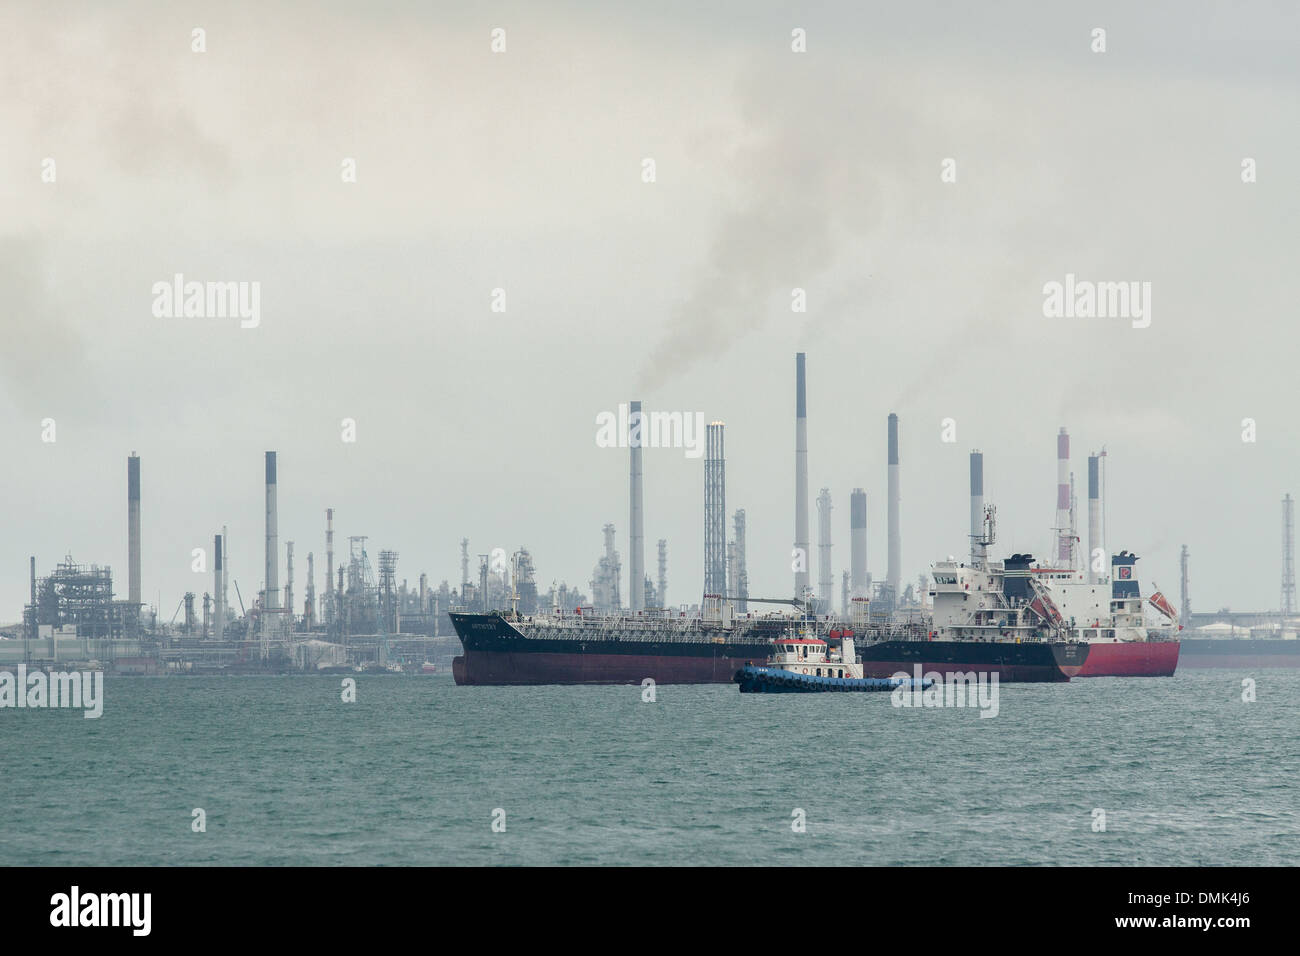 VUE OF THE OIL TANKER TERMINAL OF SINGAPORE WITH ITS TANKERS AND OIL